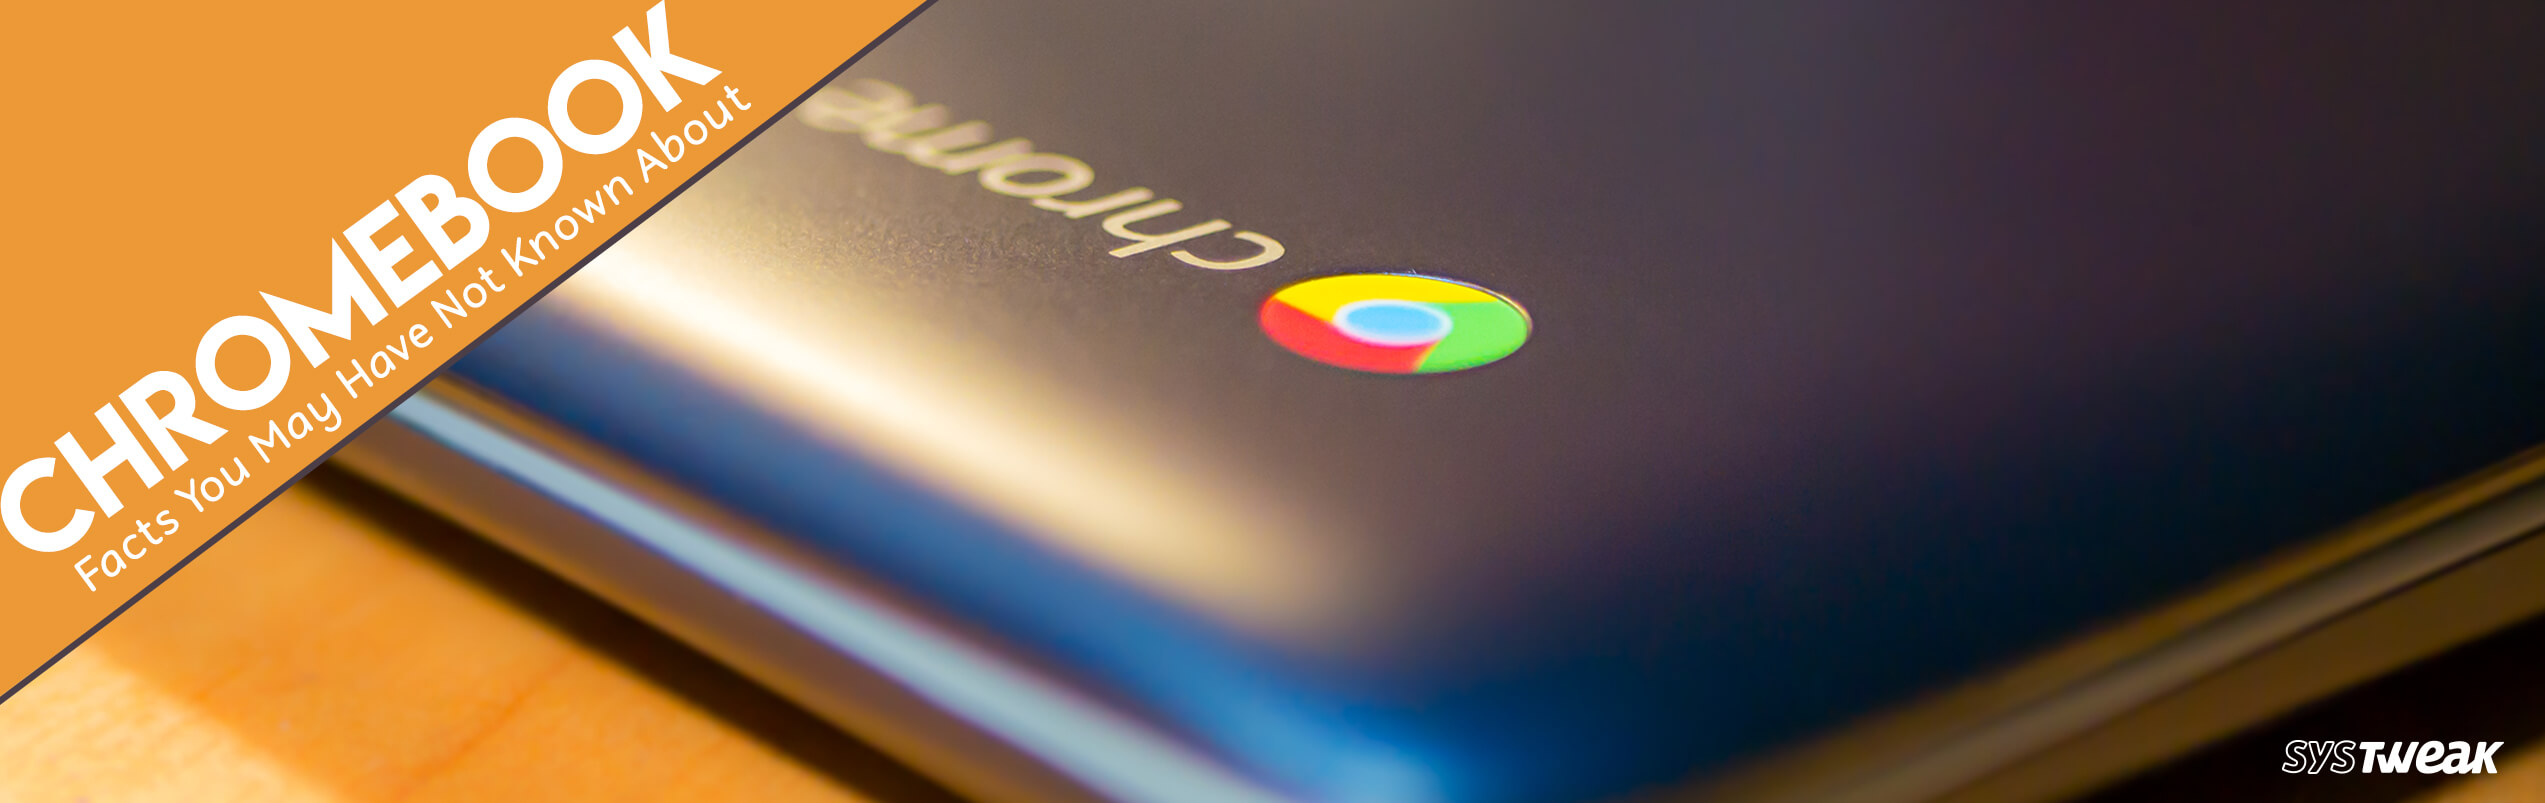 7 Chromebook Facts You May Have Not Known About!